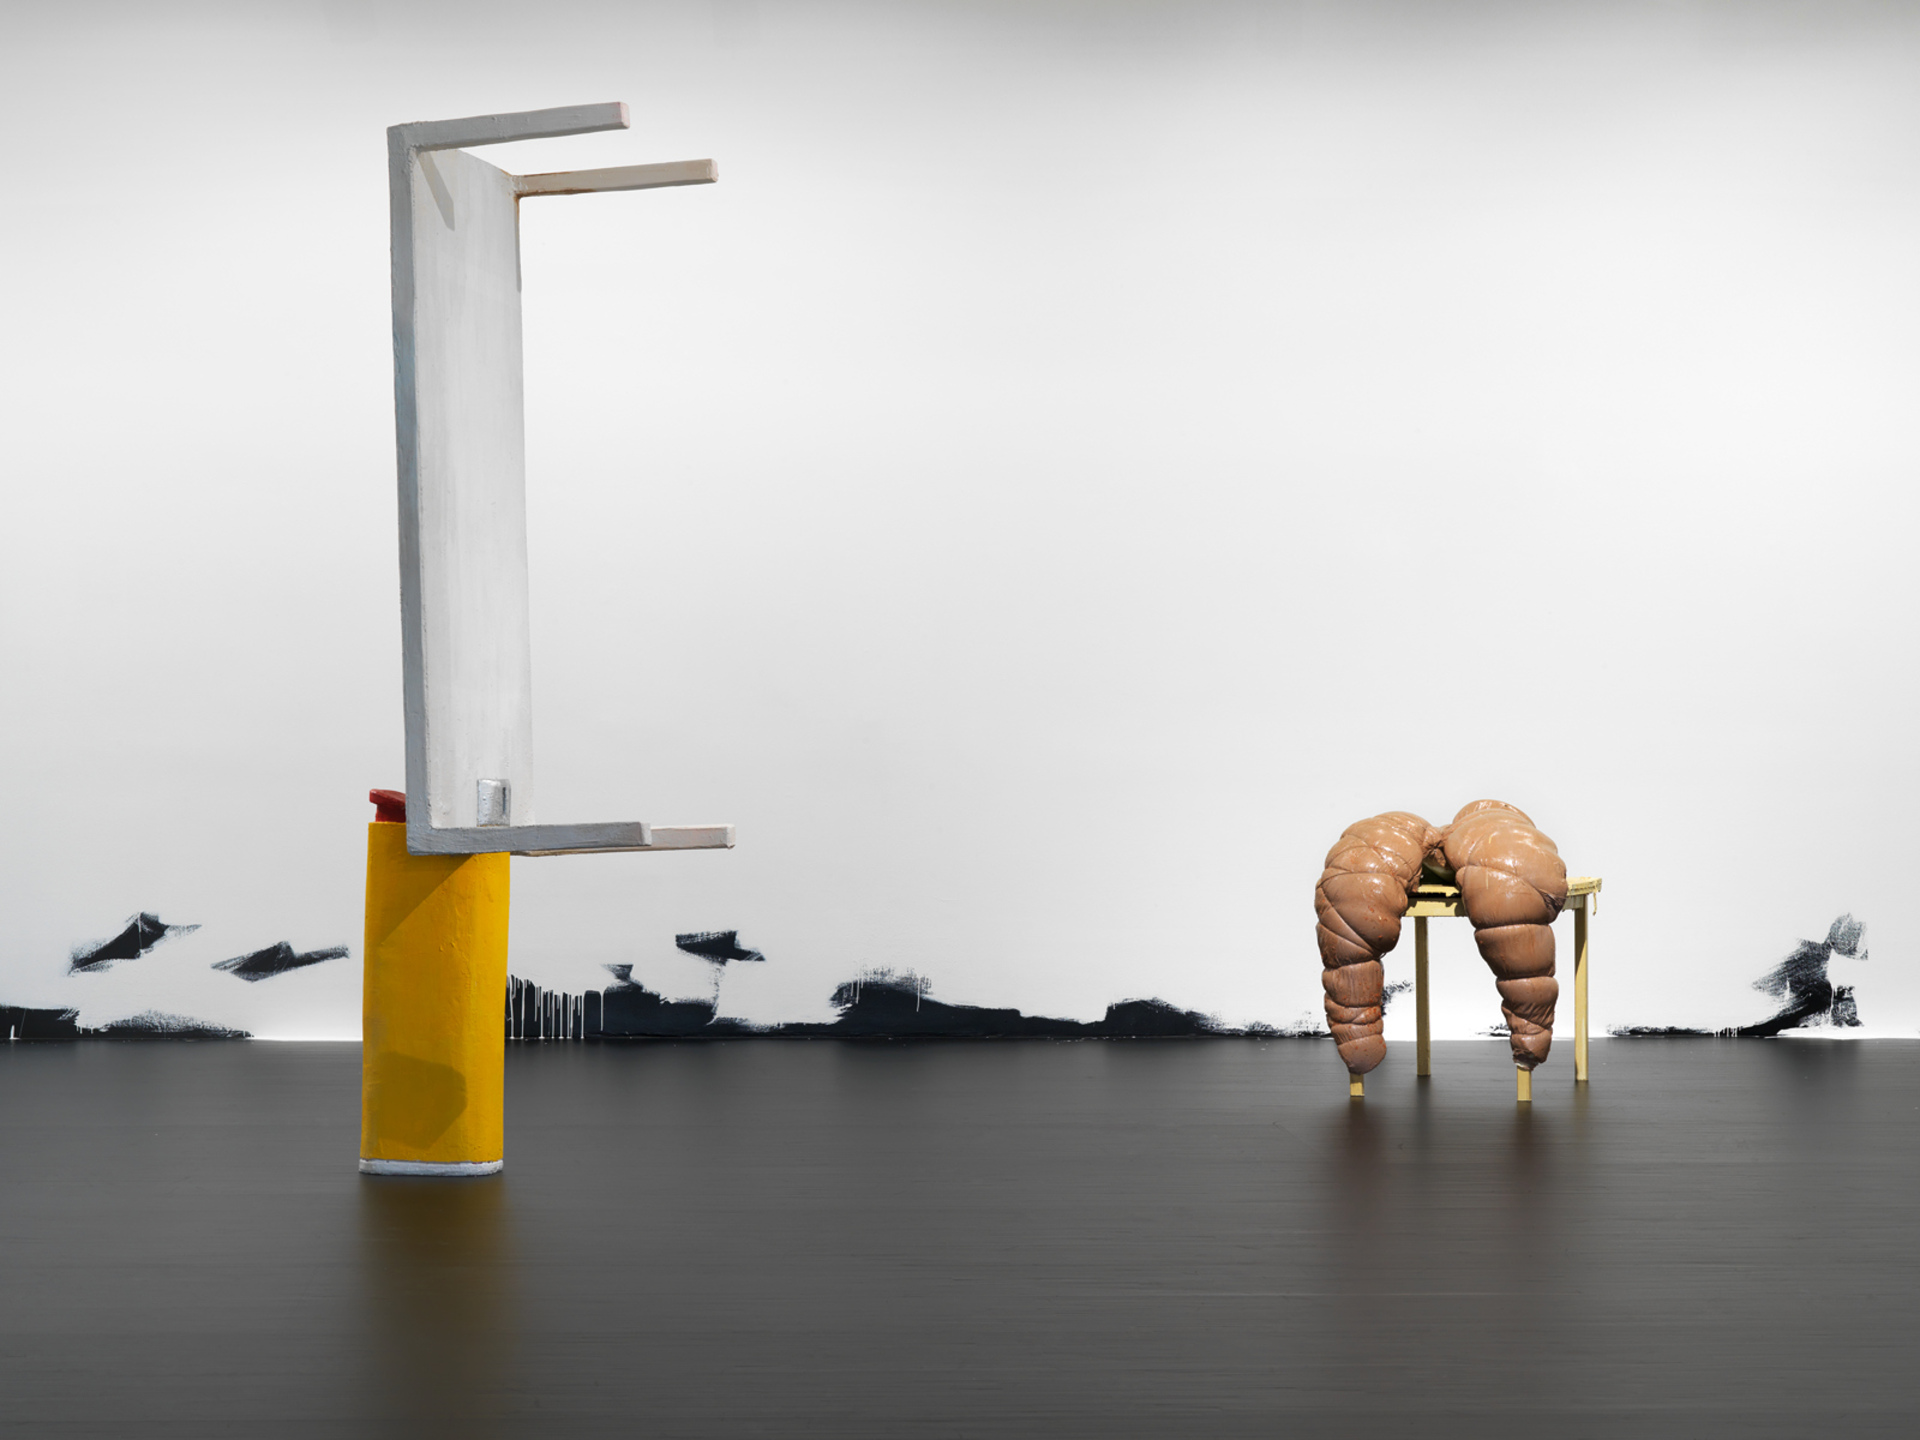 You Can Only Lose; Tisch mit; Untitled (Floor Piece)